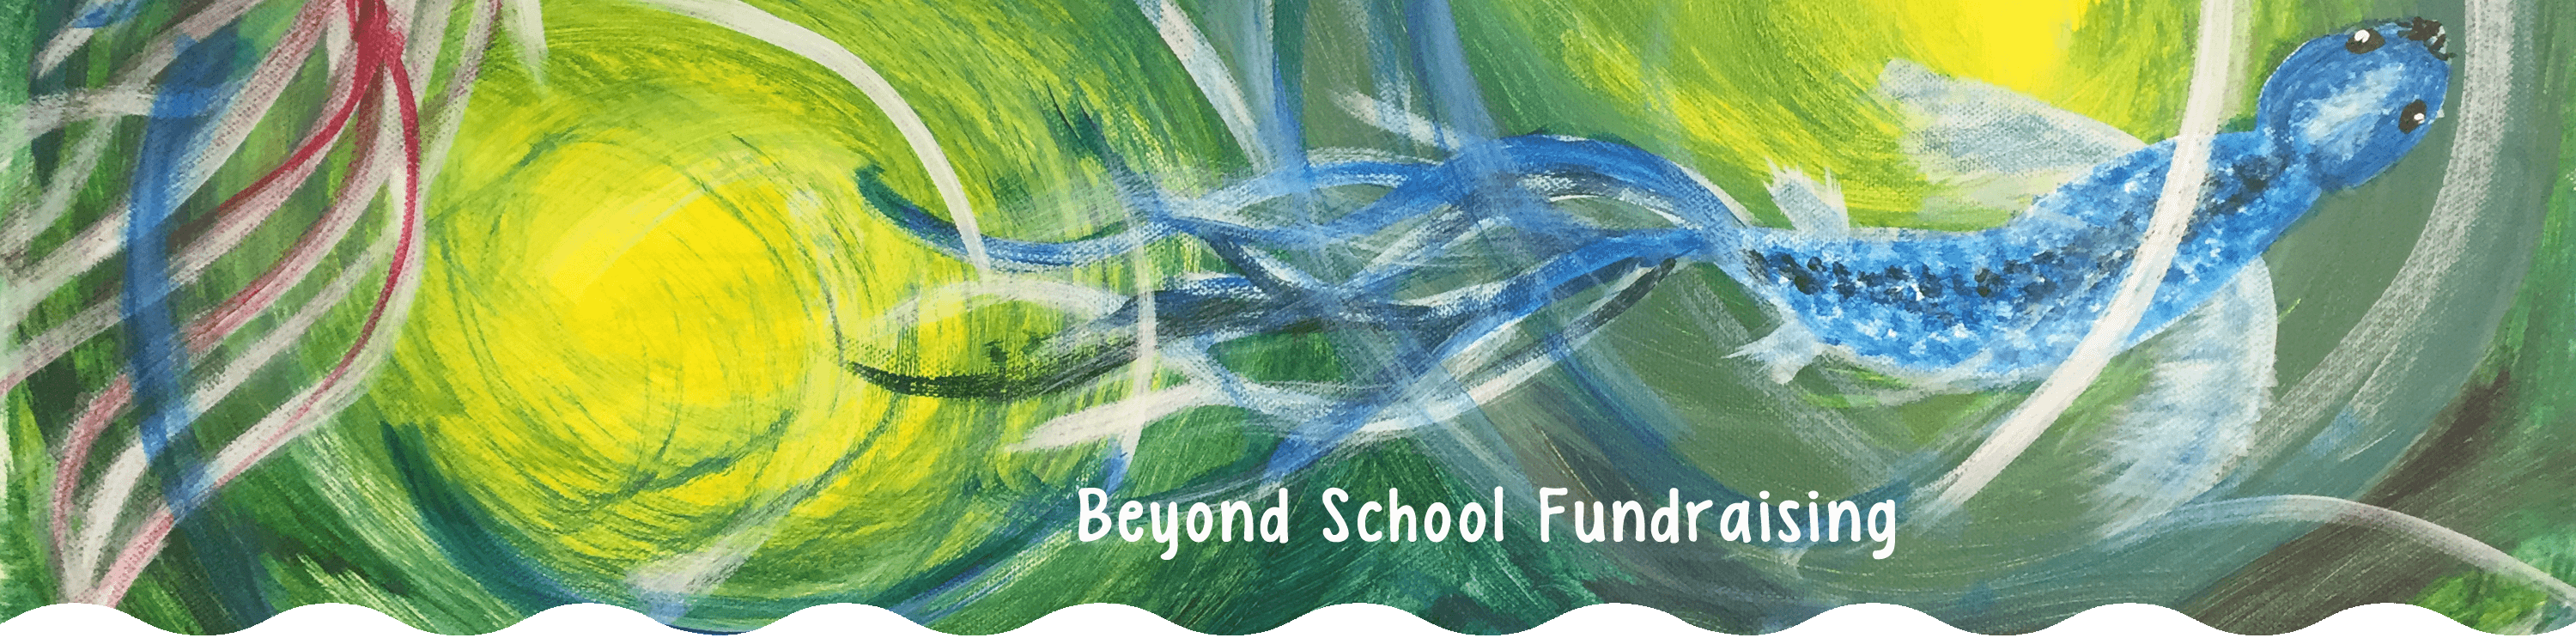 Beyond School Fundraising Banner